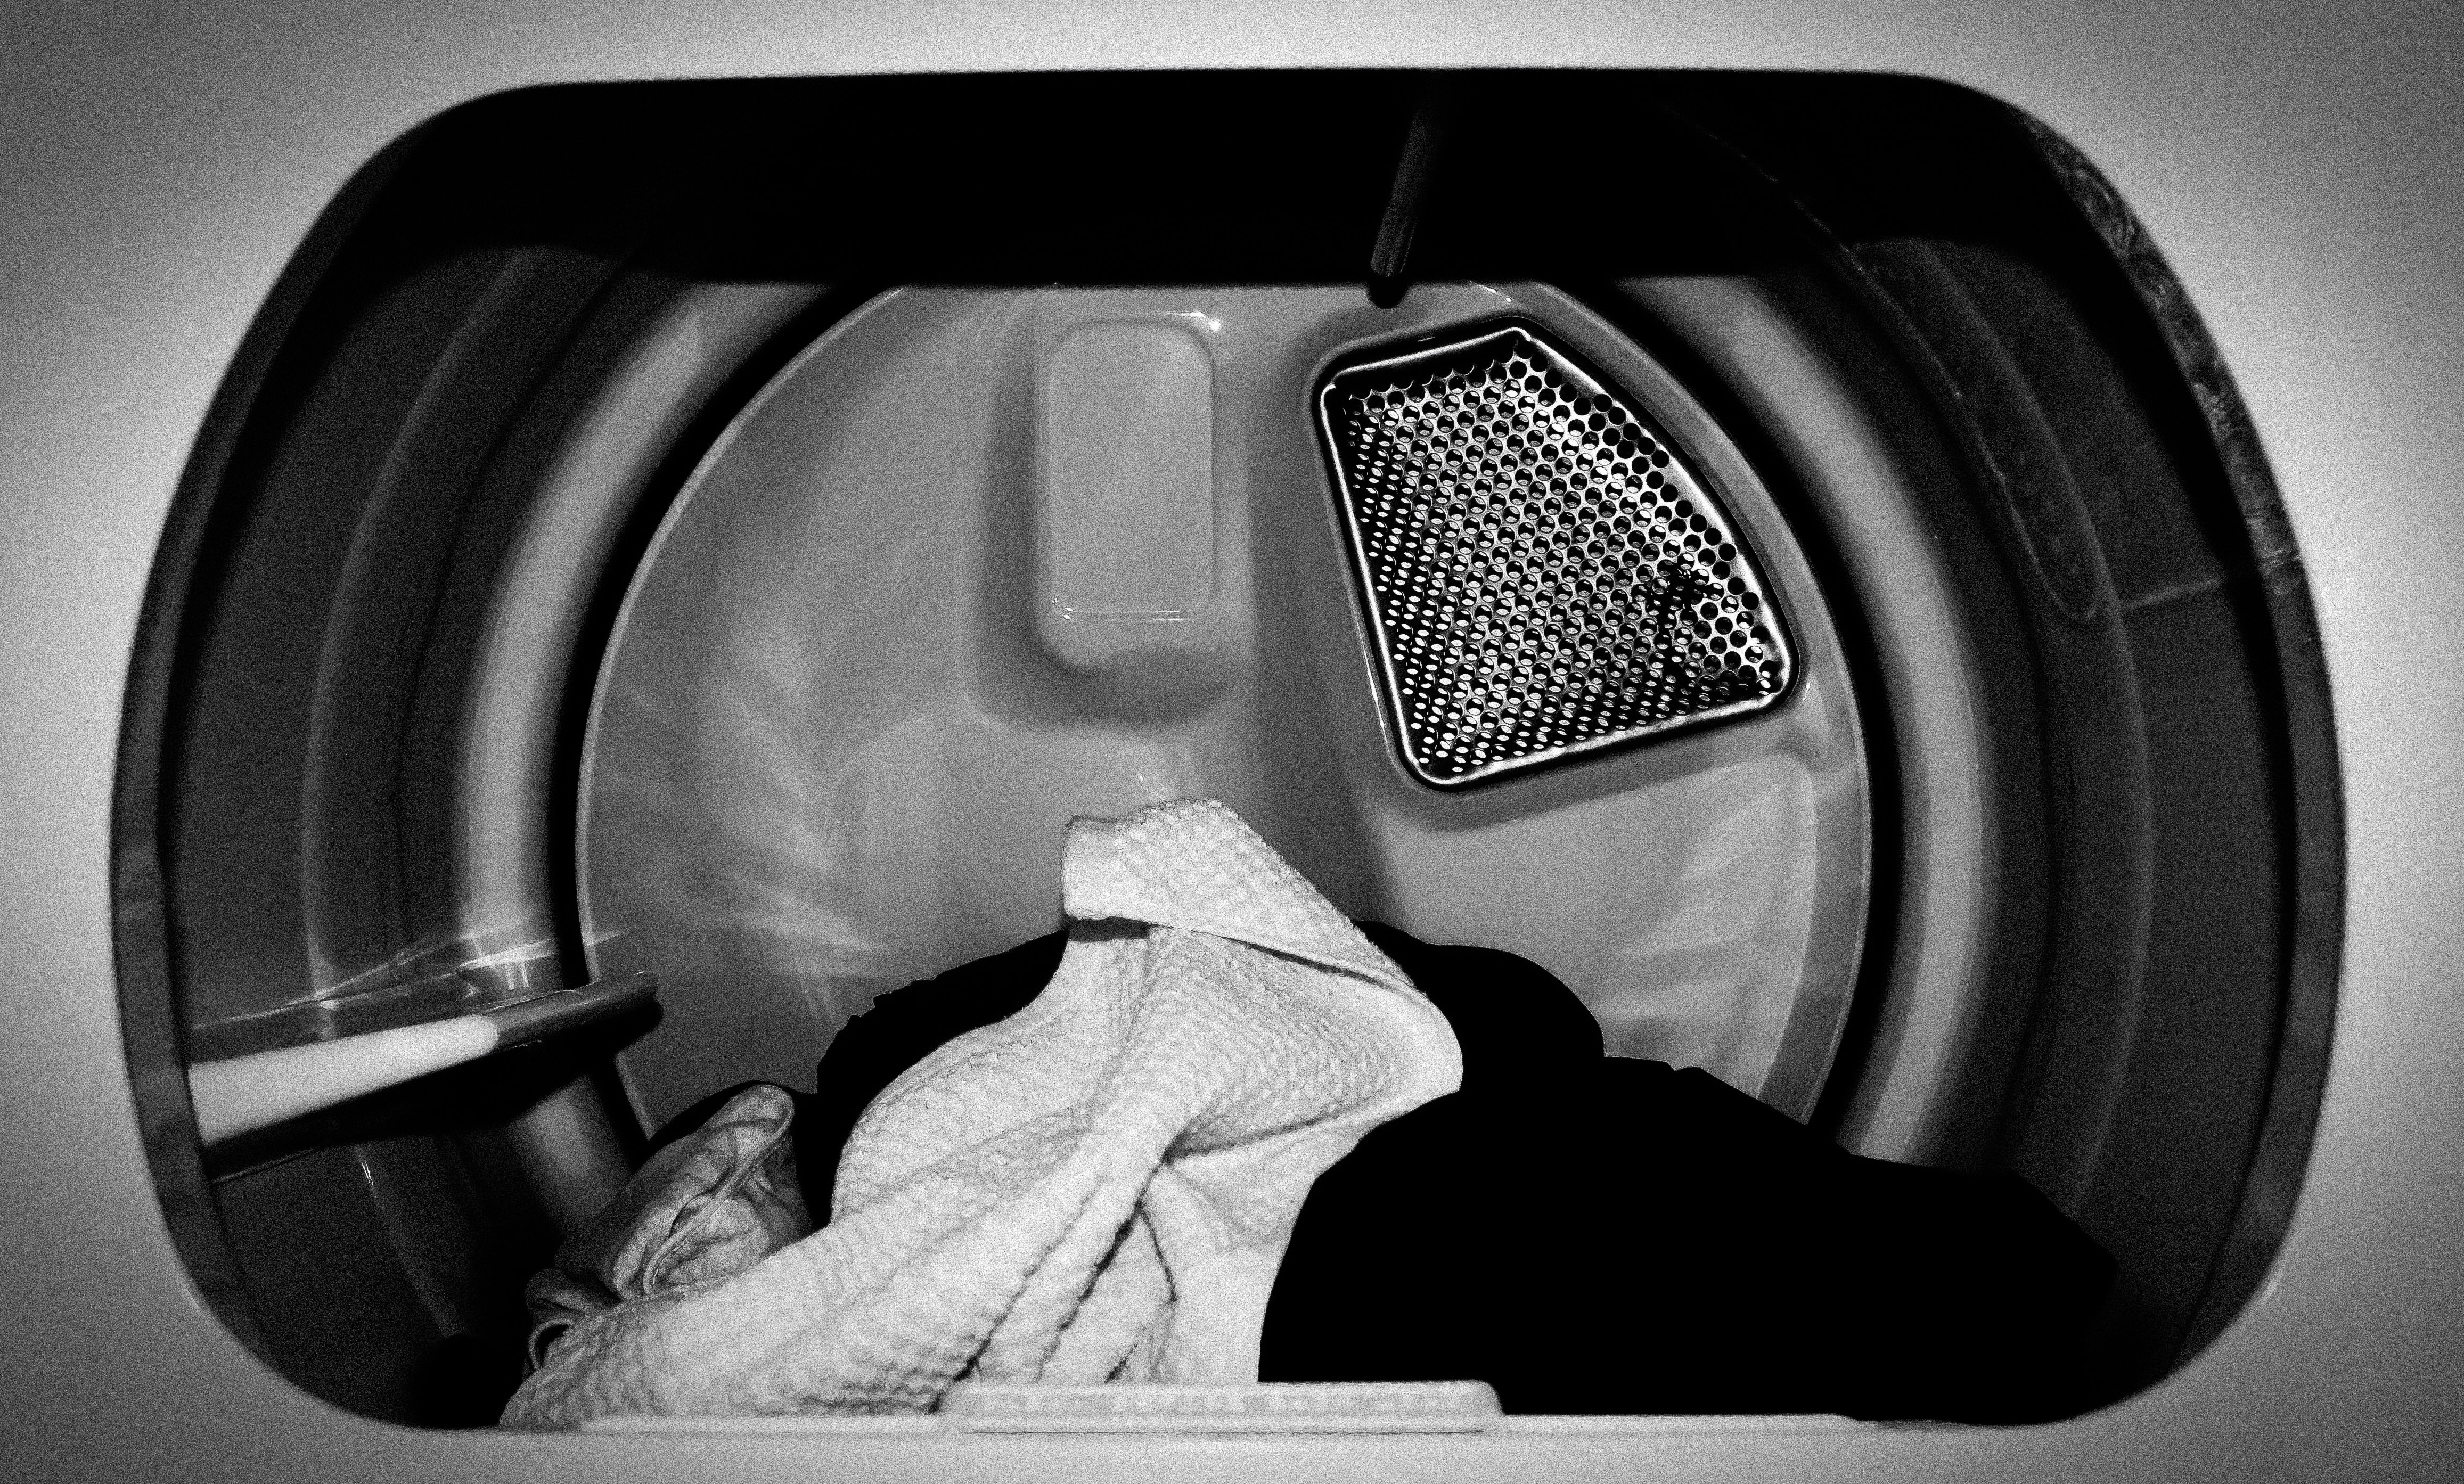 Black and white close-up view of clothes dryer's interior with clothing inside